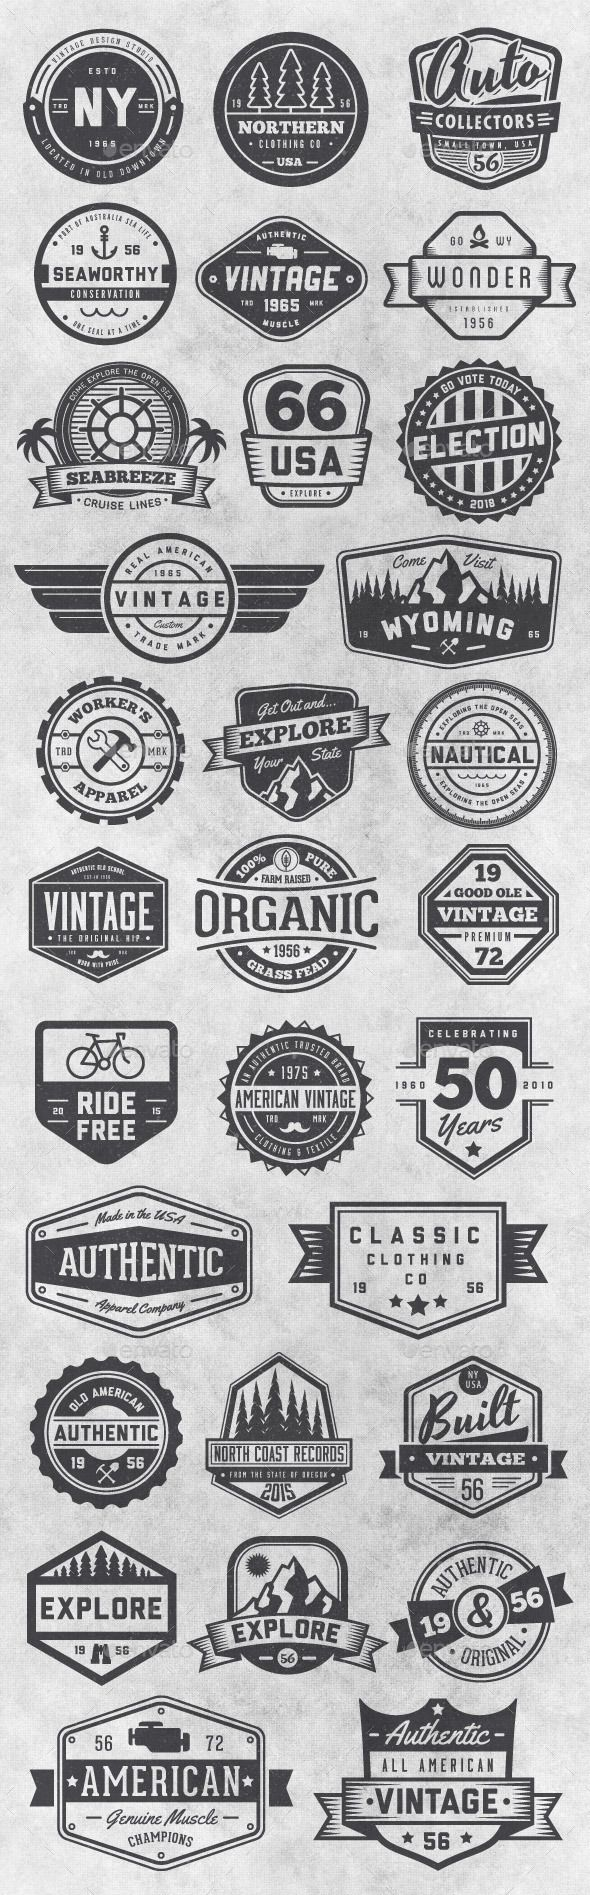 30 Vintage Style Badges and Logos Vol 6 - Badges & Stickers